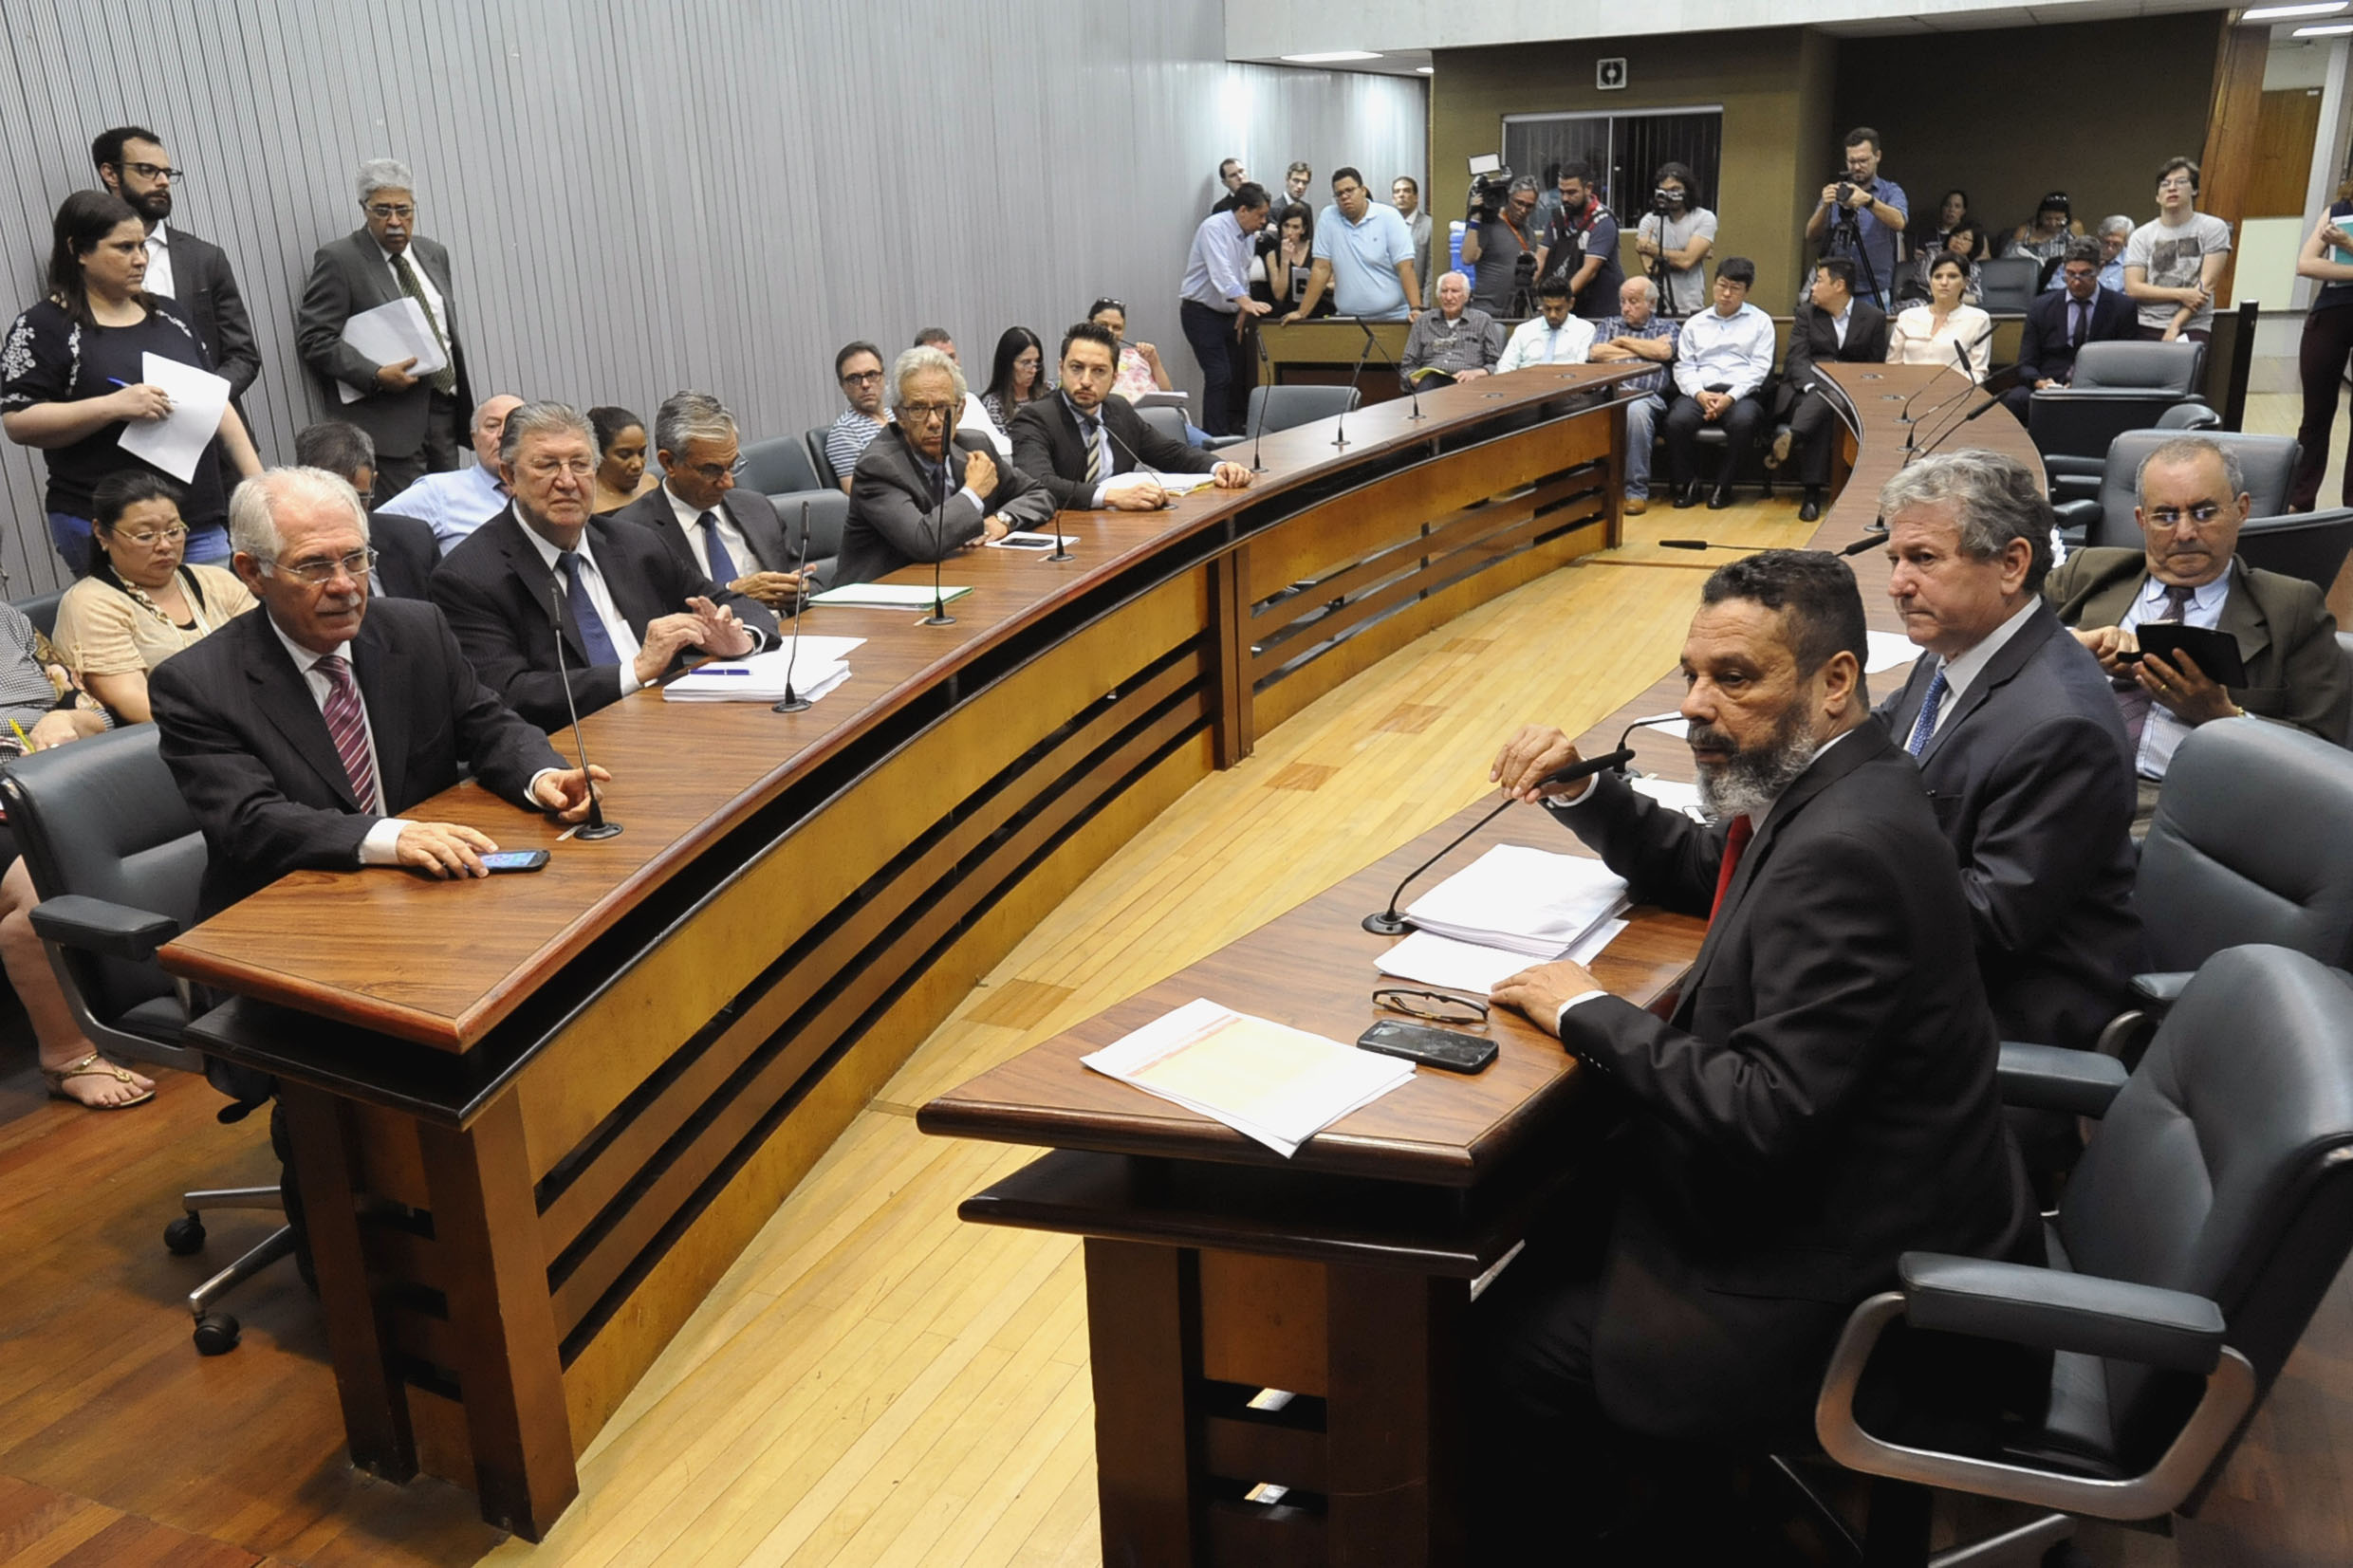 Parlamentares na comissão <a style='float:right' href='https://www3.al.sp.gov.br/repositorio/noticia/N-12-2018/fg228740.jpg' target=_blank><img src='/_img/material-file-download-white.png' width='14px' alt='Clique para baixar a imagem'></a>